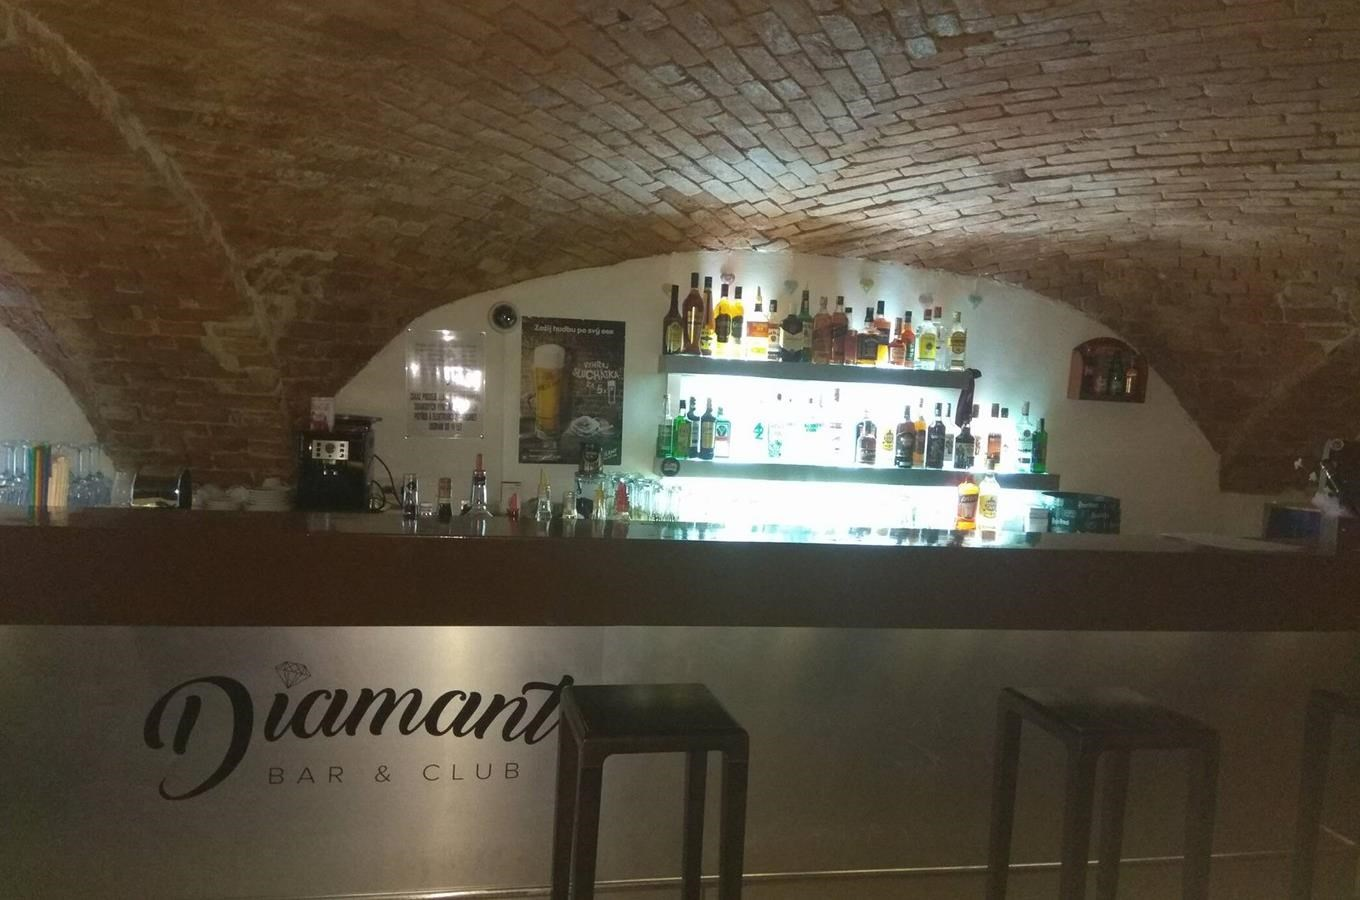 Diamant bar & club